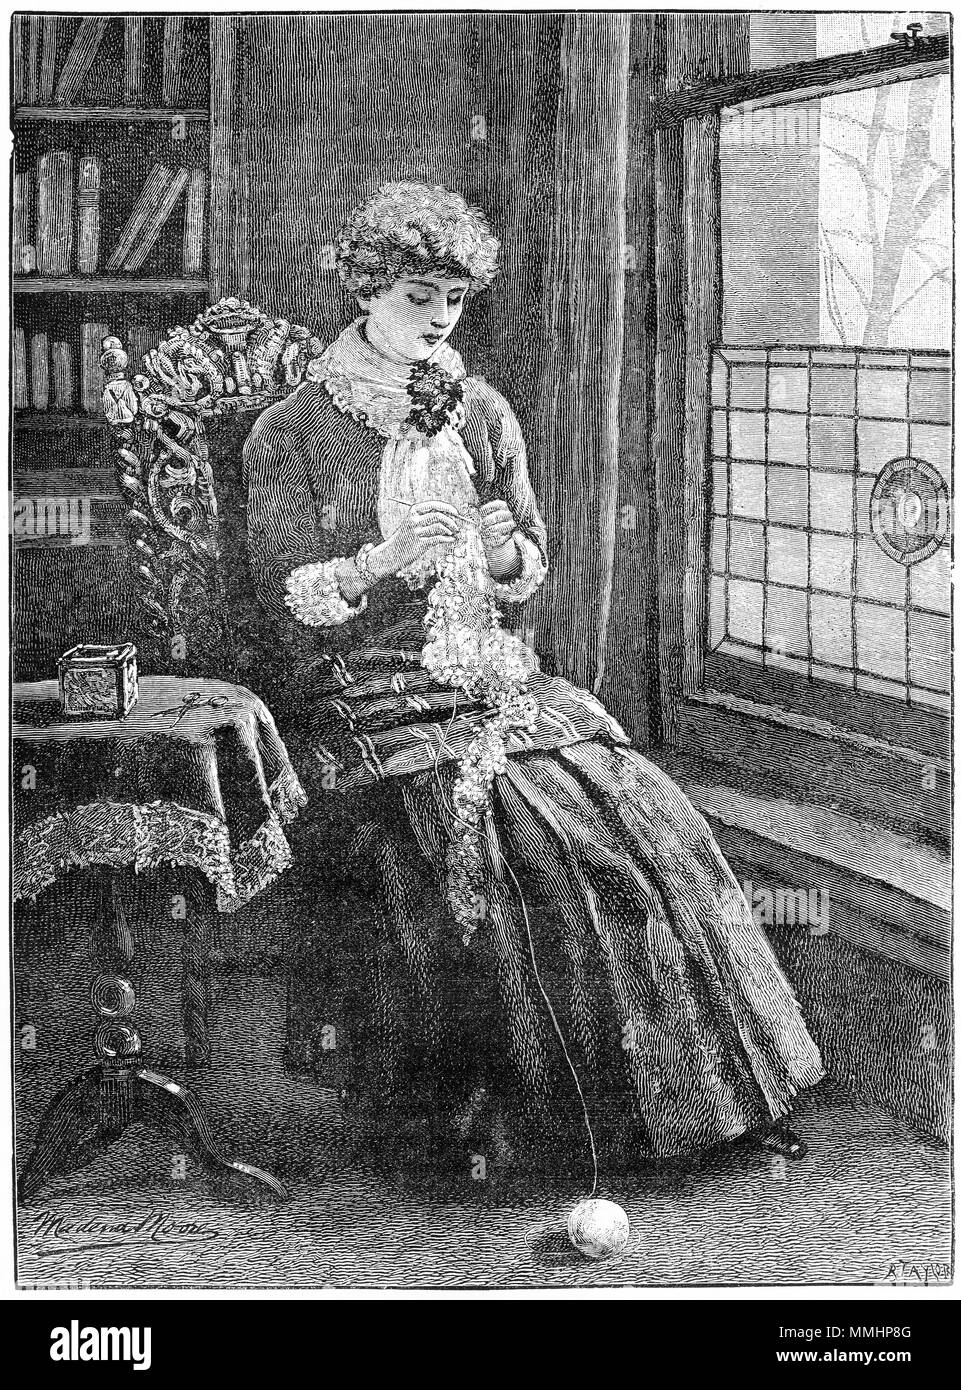 Engraving of a young woman crocheting at home. From an original engraving in the Girl's Own Paper magazine 1883. - Stock Image